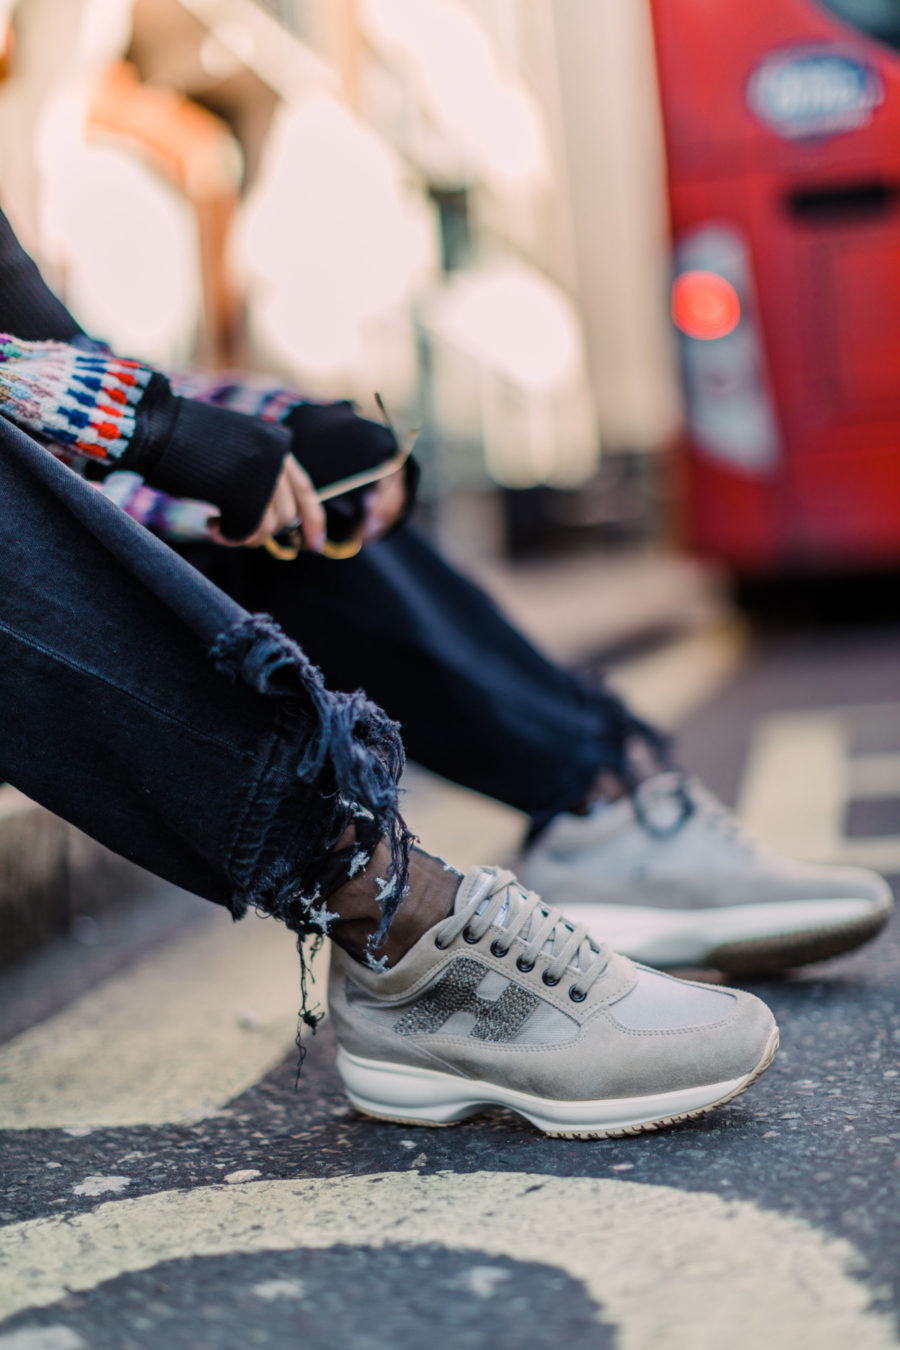 Sneaker Trends to Shop and Wear - chunky sneakers, dad sneaker trend // Notjessfashion.com